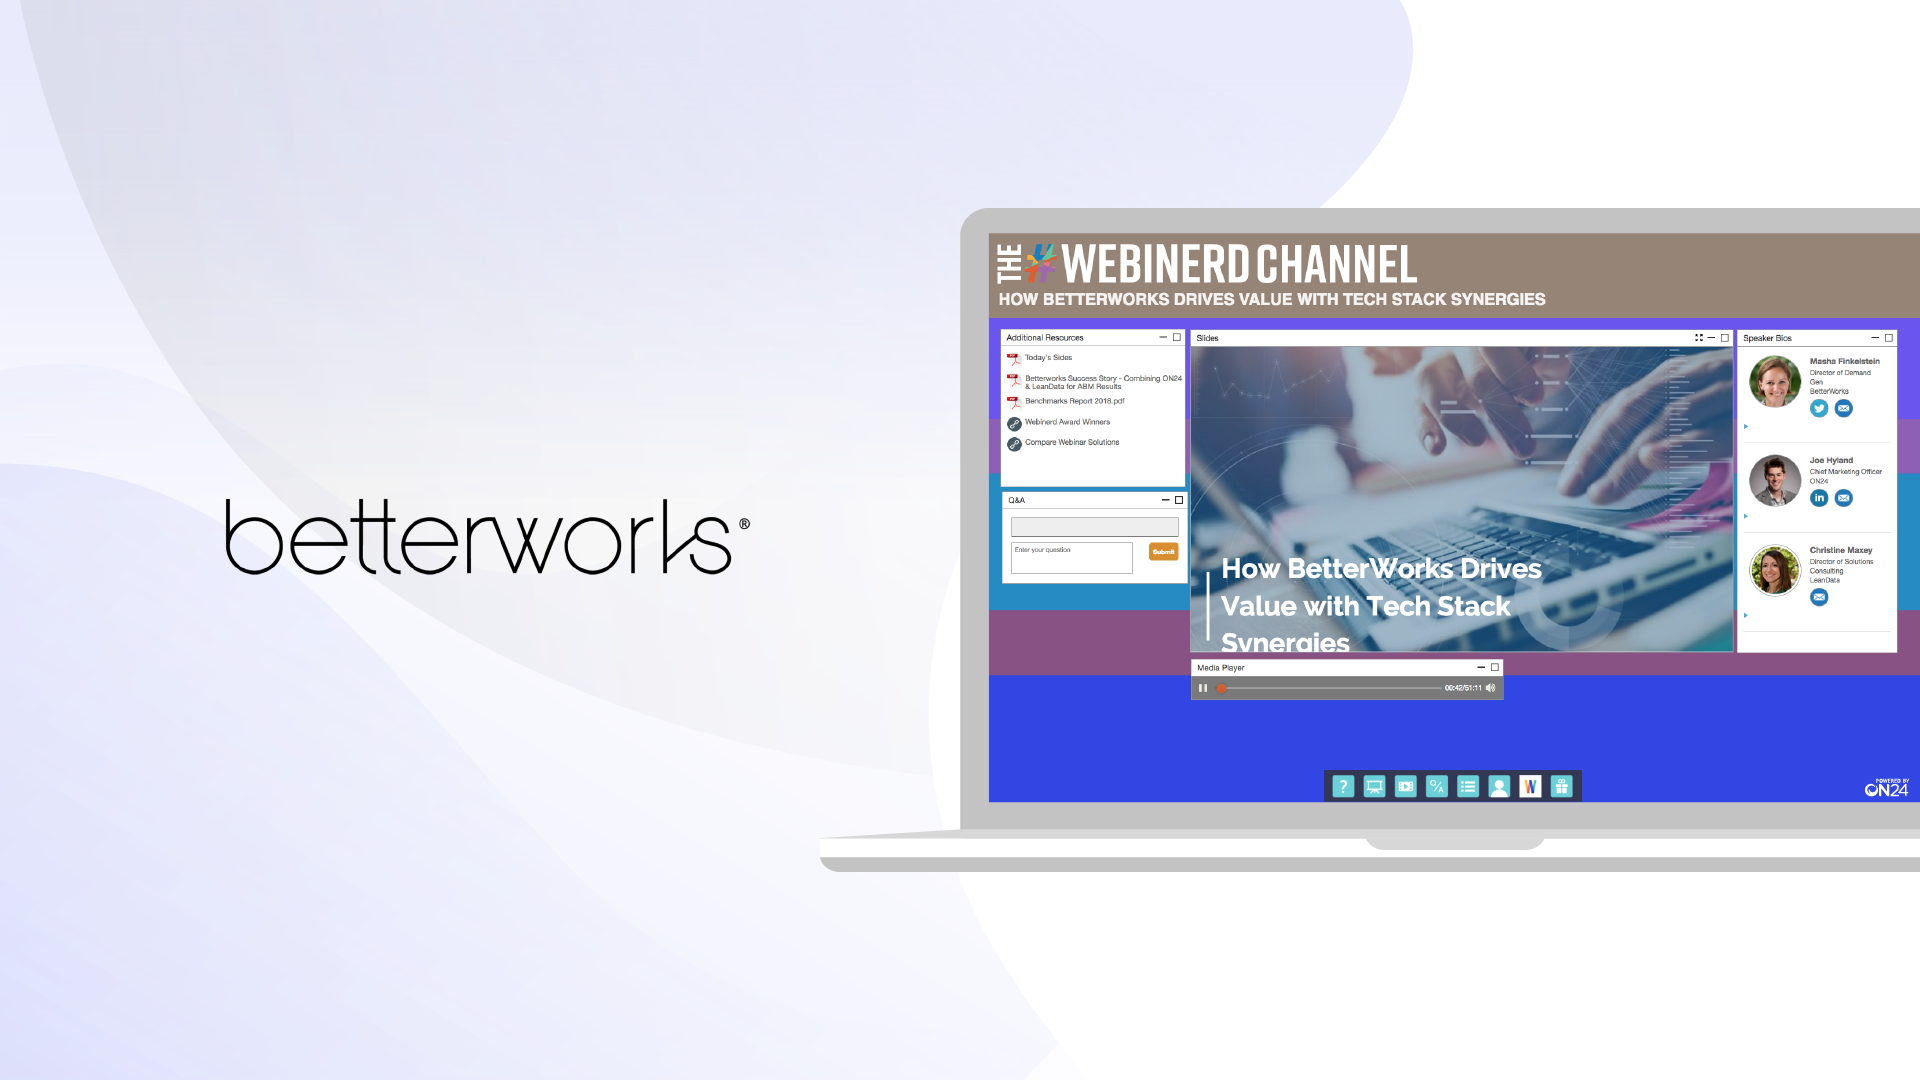 a3af4cb999 The #Webinerd Channel: How BetterWorks Drives Value with Tech Stack Synergy